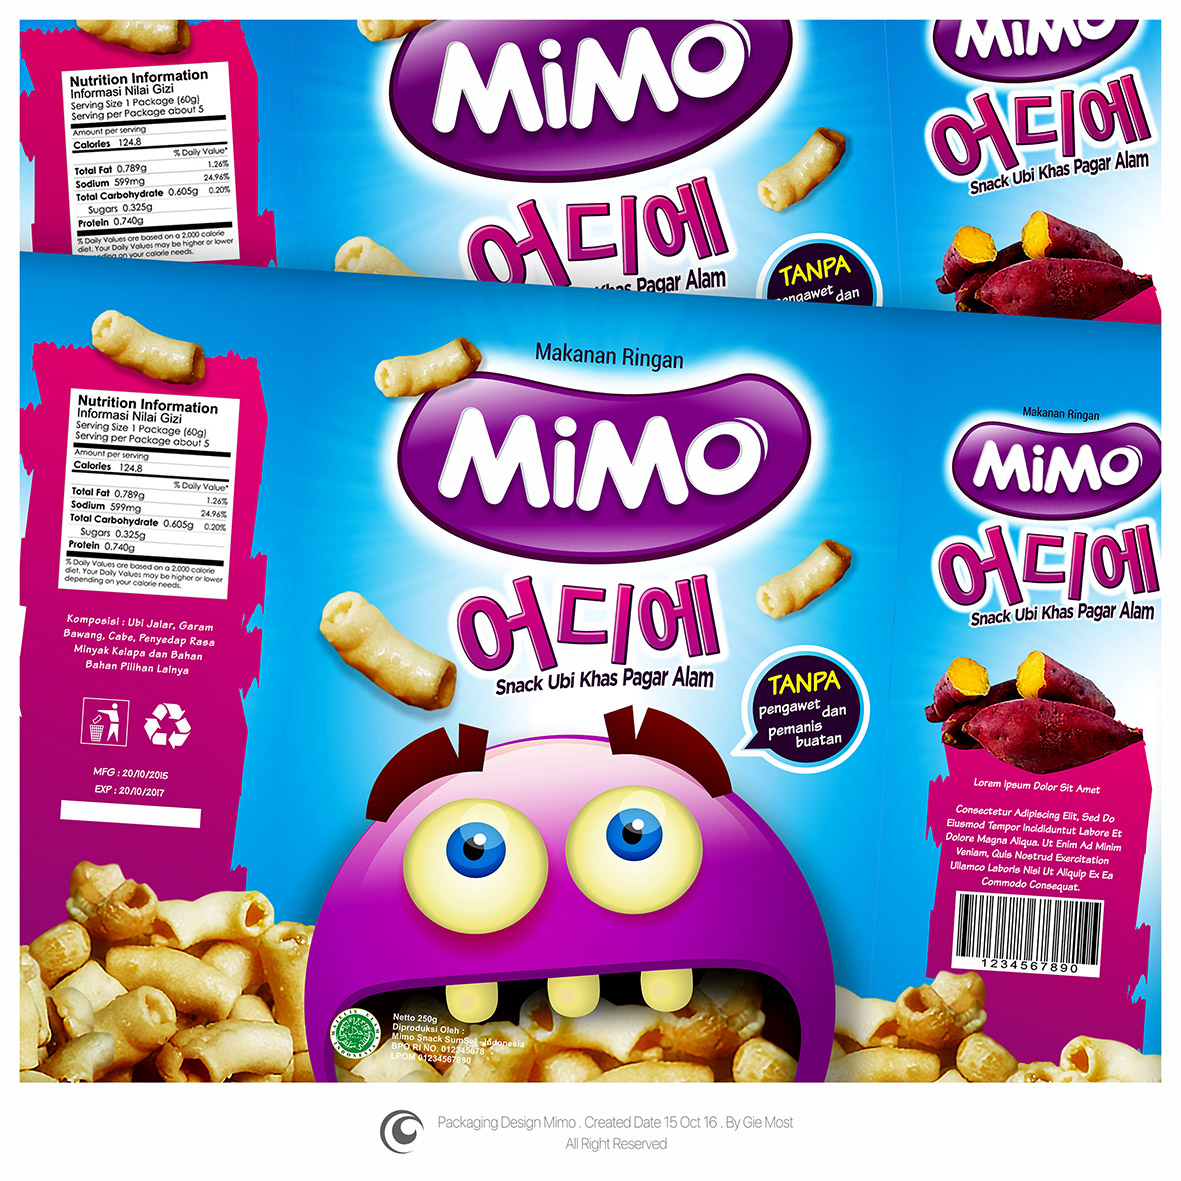 Gallery Packaging Design Untuk Mimo Snack Ubi Khas Pagar Makaroni Kemasan Box Office 71a8b37bfa